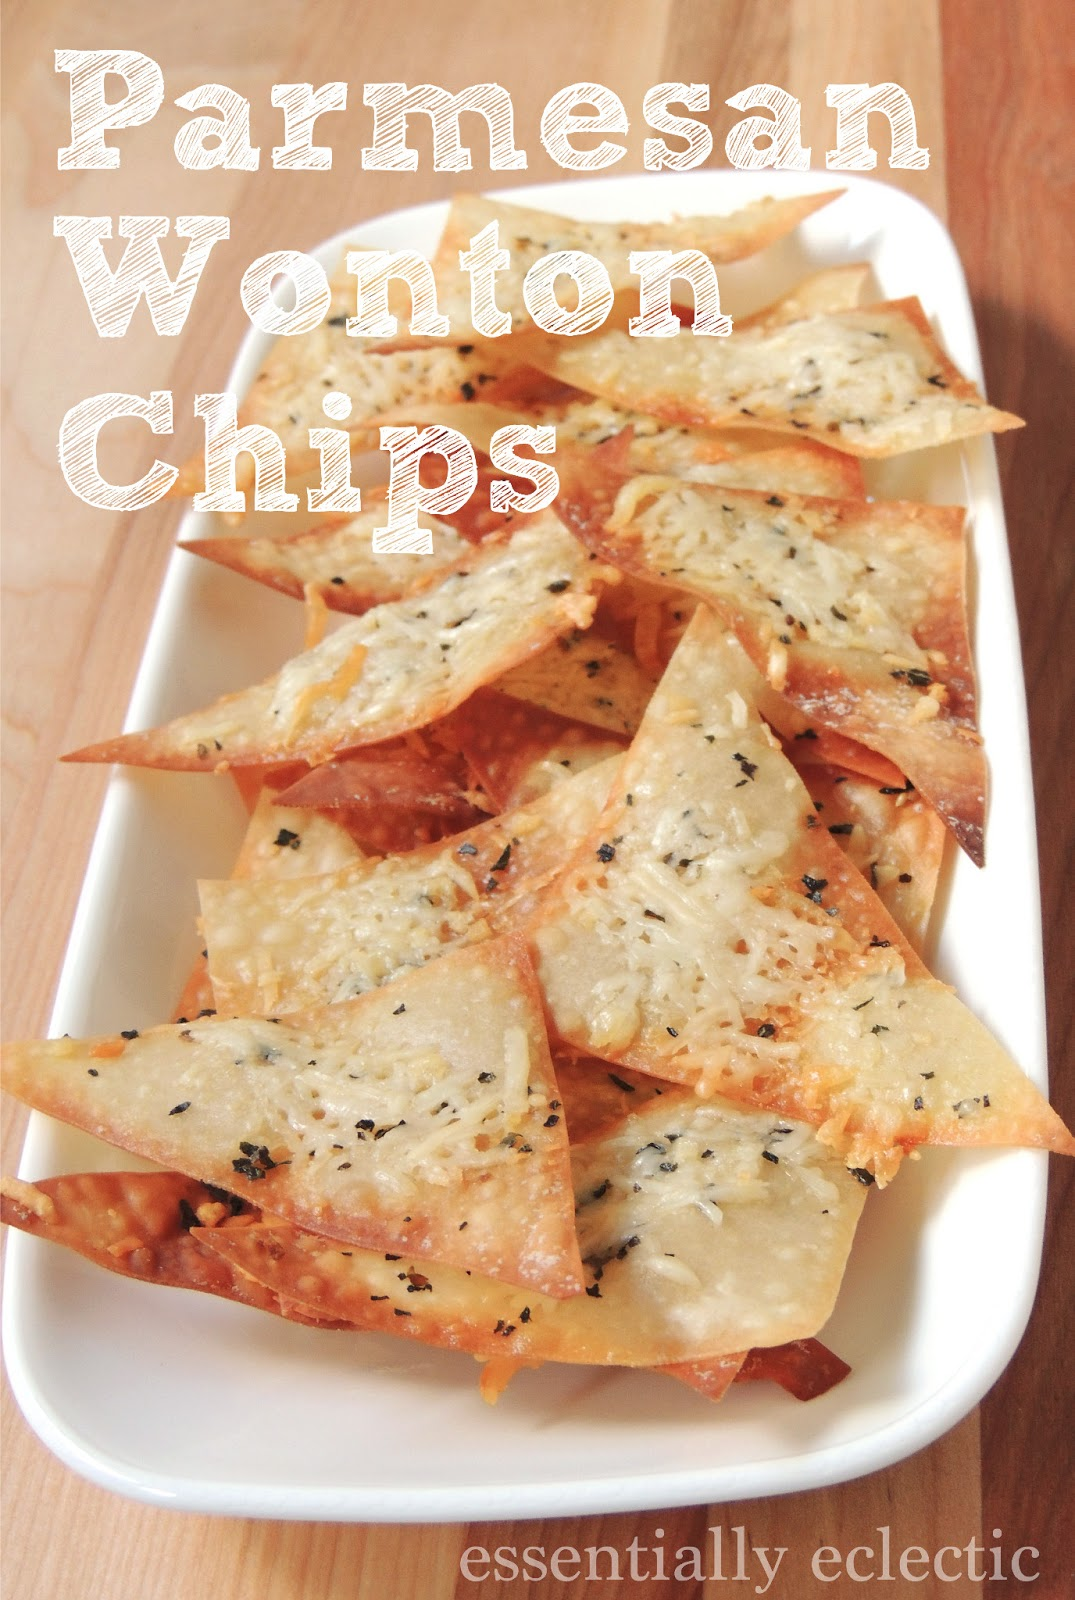 Parmesan Wonton Chips | Essentially Eclectic